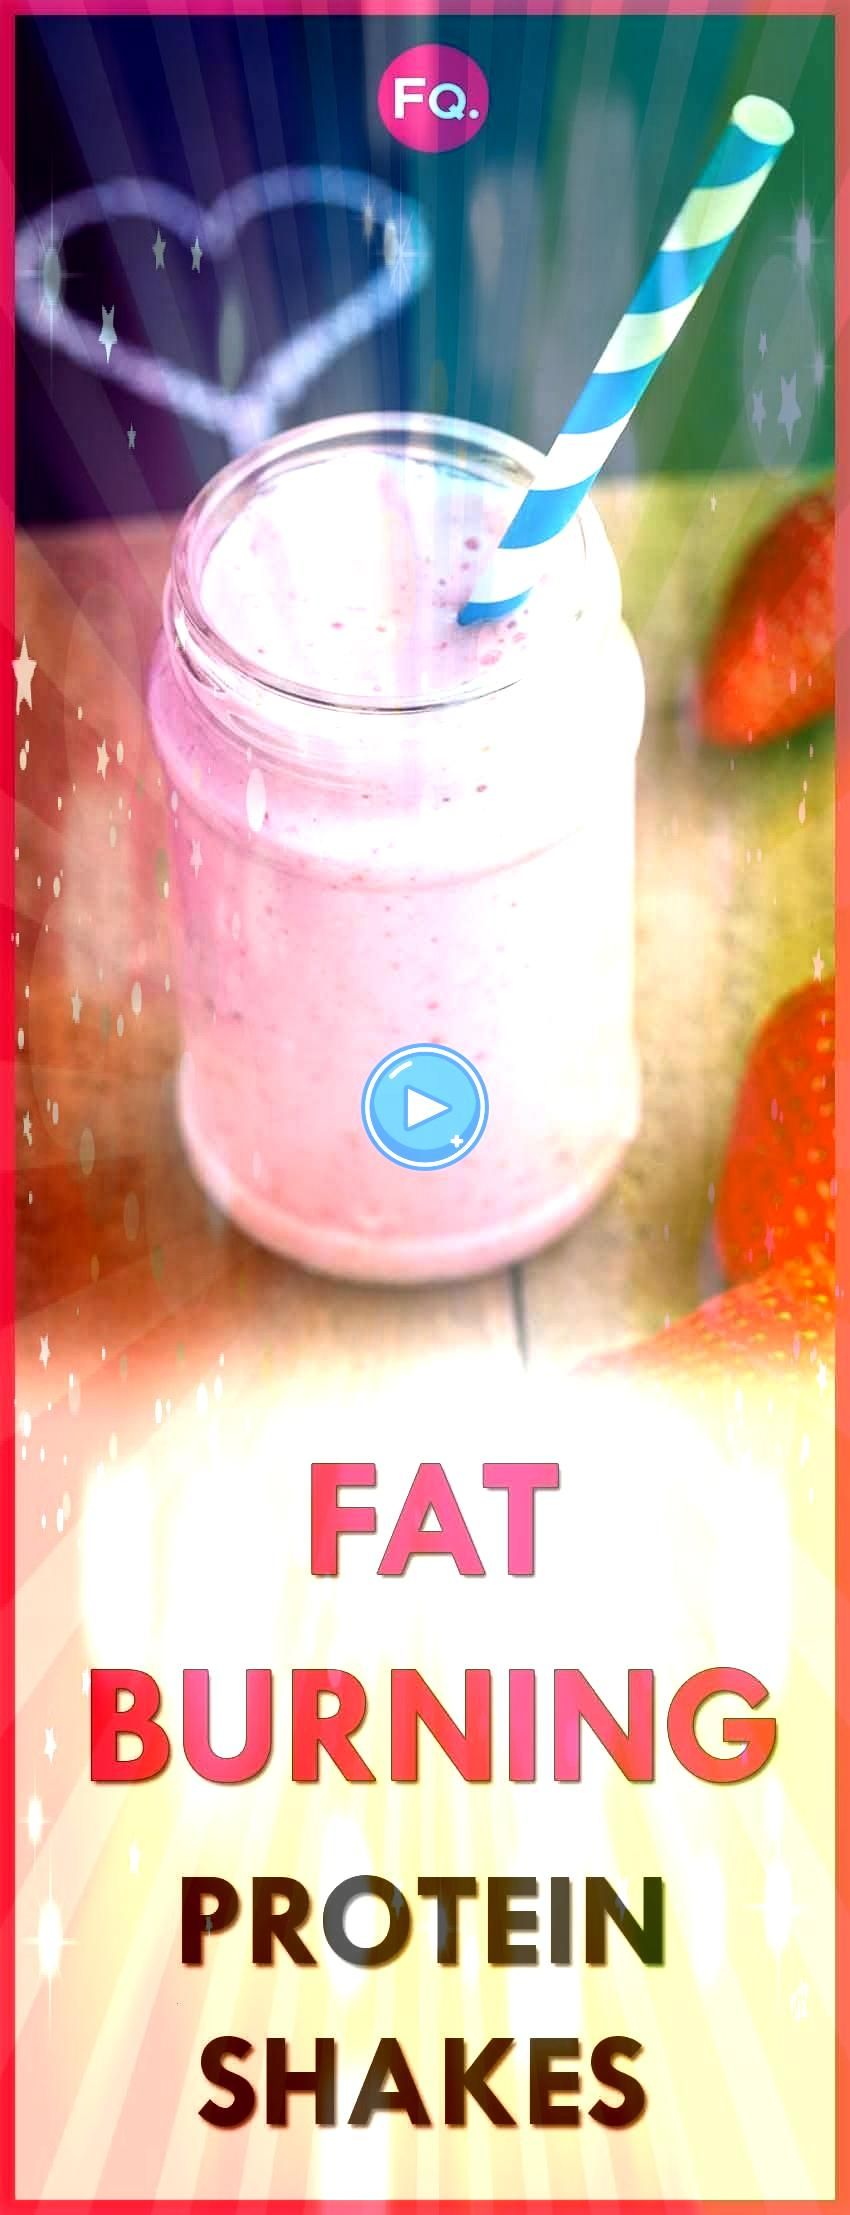 Shakes For Weight Loss Eight FatsShredding Recipes To StriveProtein Shakes For Weight Loss Eight FatsShredding Recipes To Strive Meal Replacement Shakes for Weight Loss I...